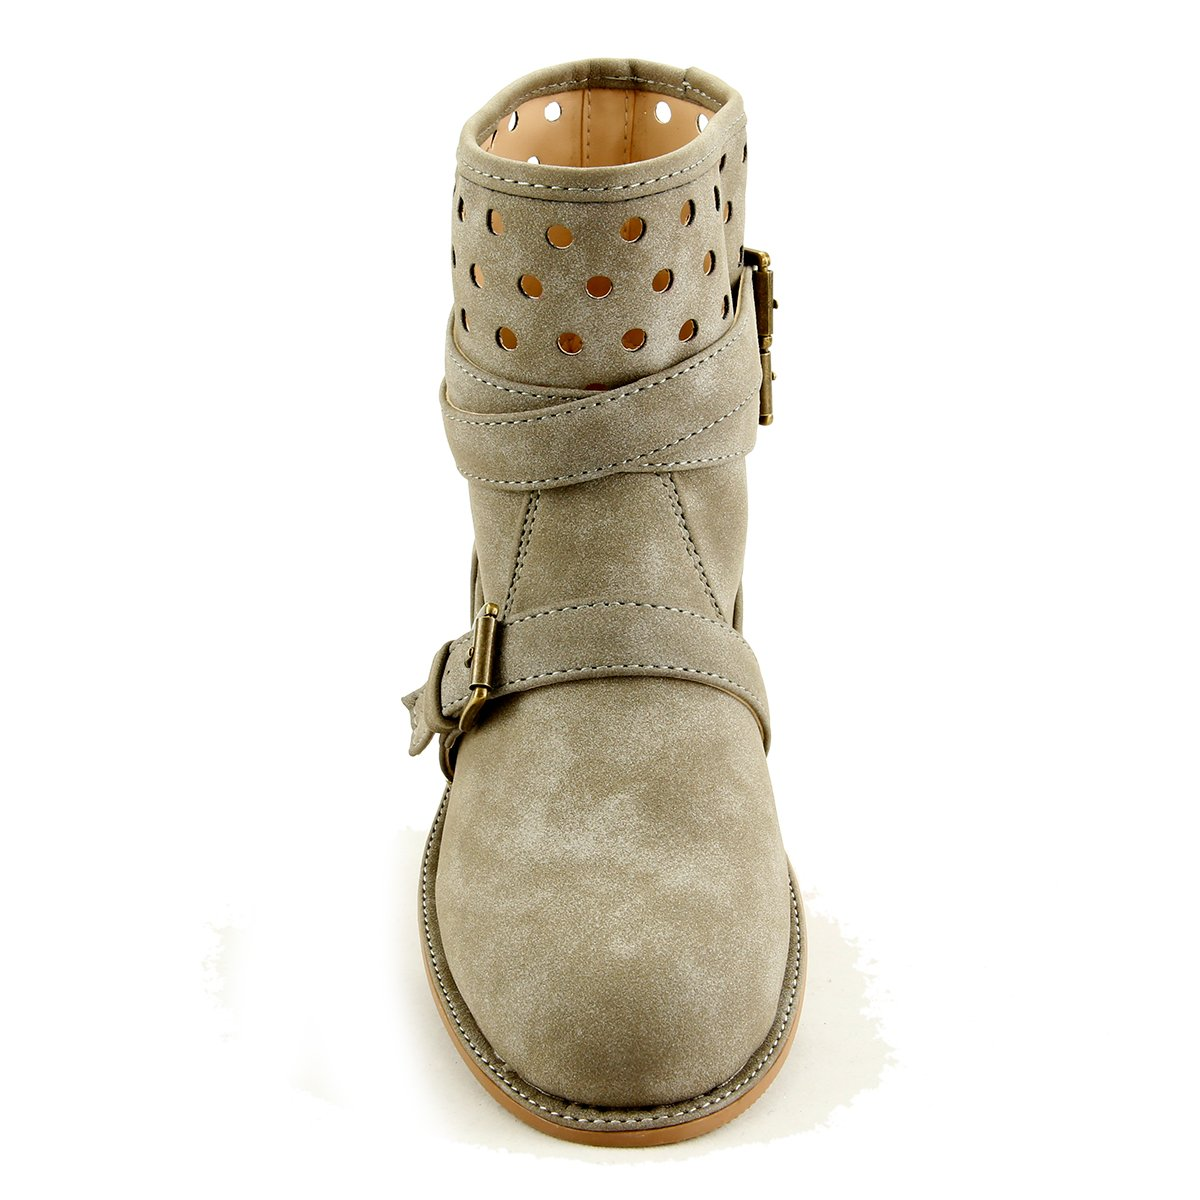 Girls Stylish Fashion Suede Wrap Boot Ankle Booties Toddler Youth size 07, Gray